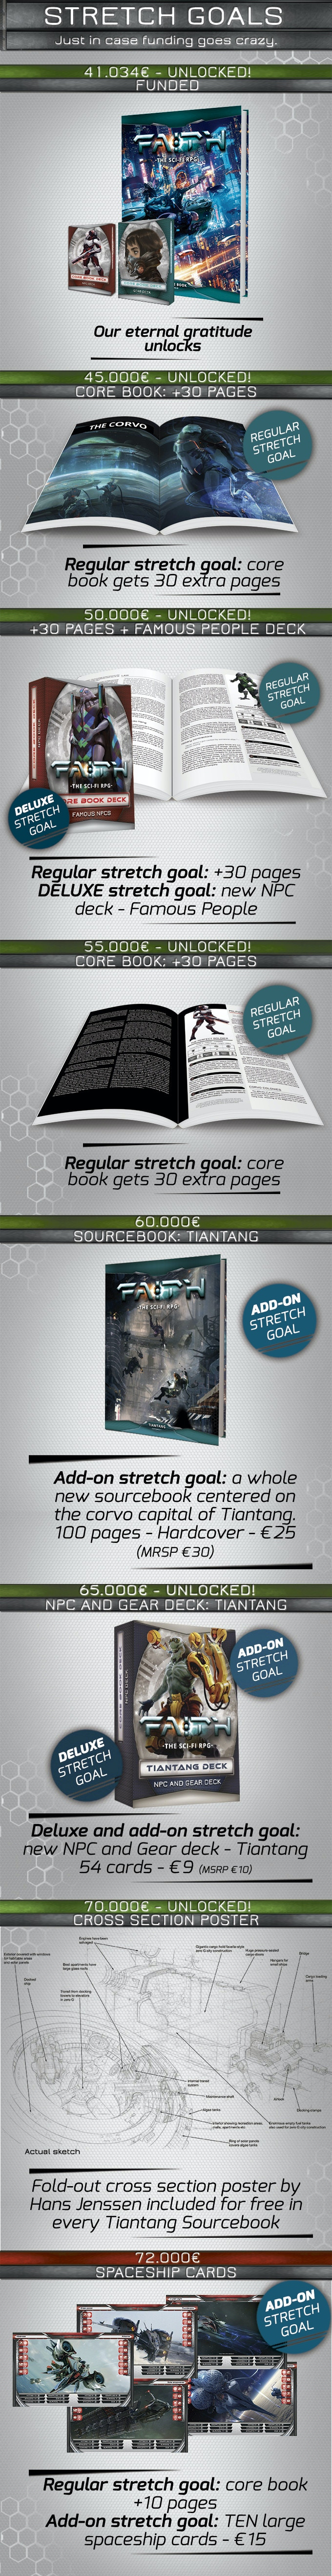 FAITH: The Sci-Fi RPG Core Book and miniatures by Burning Games